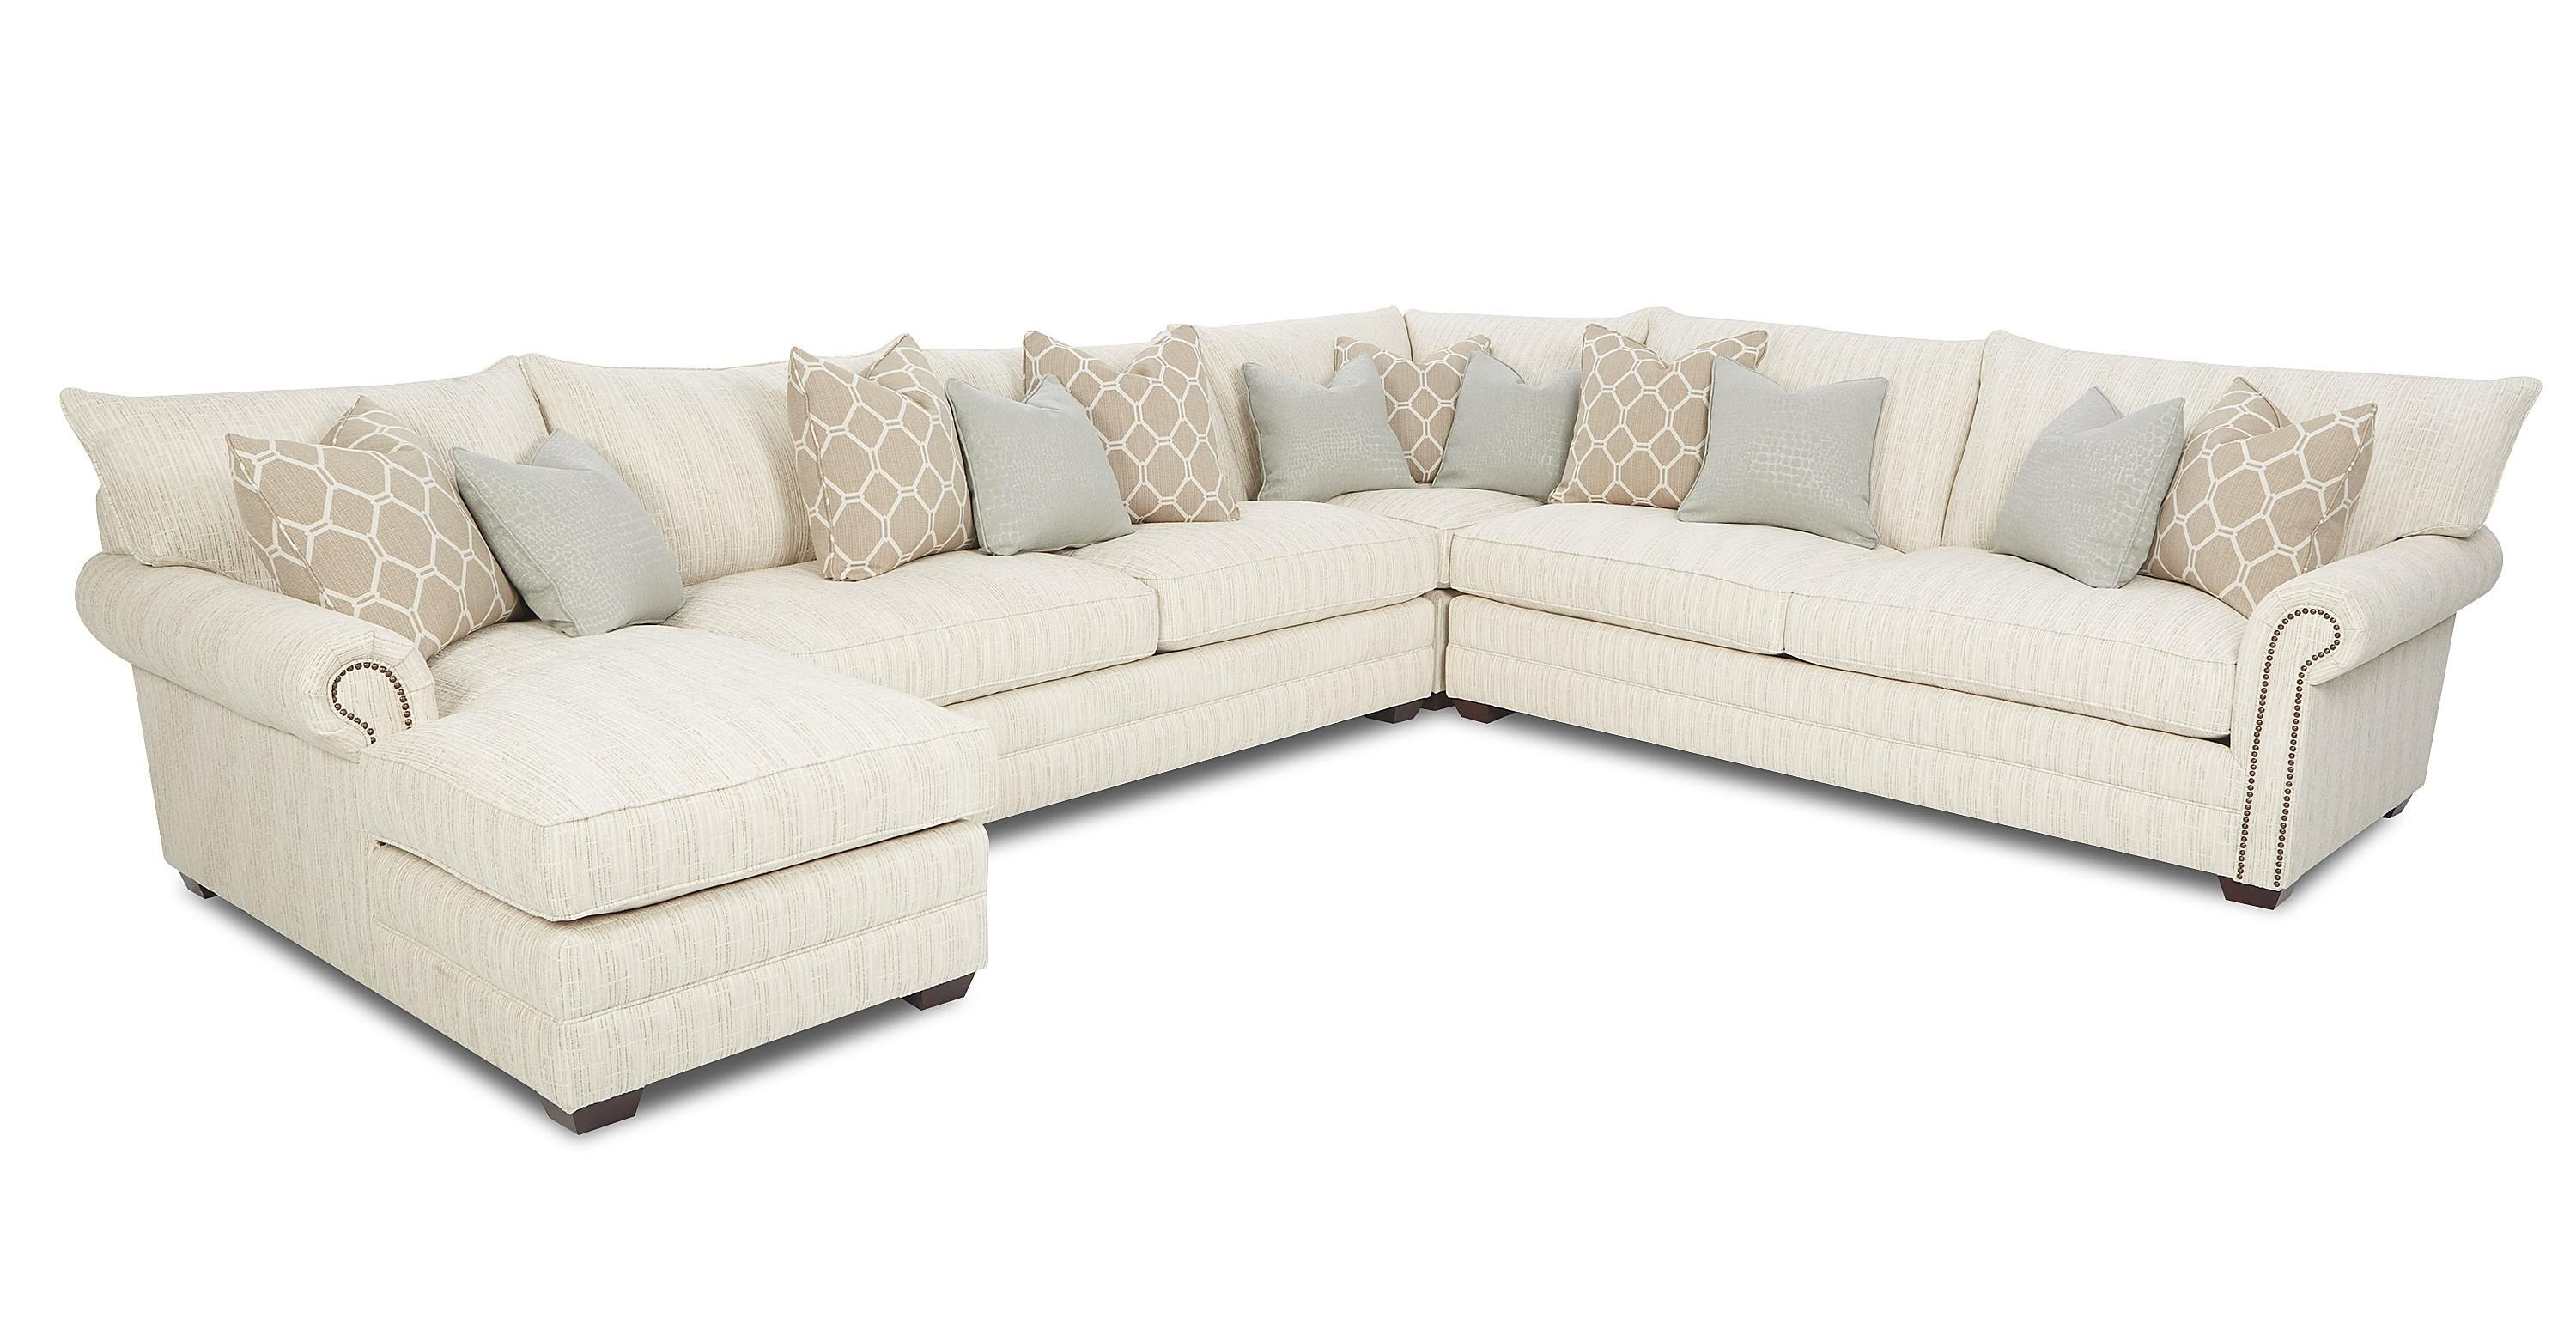 Traditional Sectional Sofa With Nailhead Trim And Chaise Lounge Sectional Sofa Grey Sectional Sofa Sectional